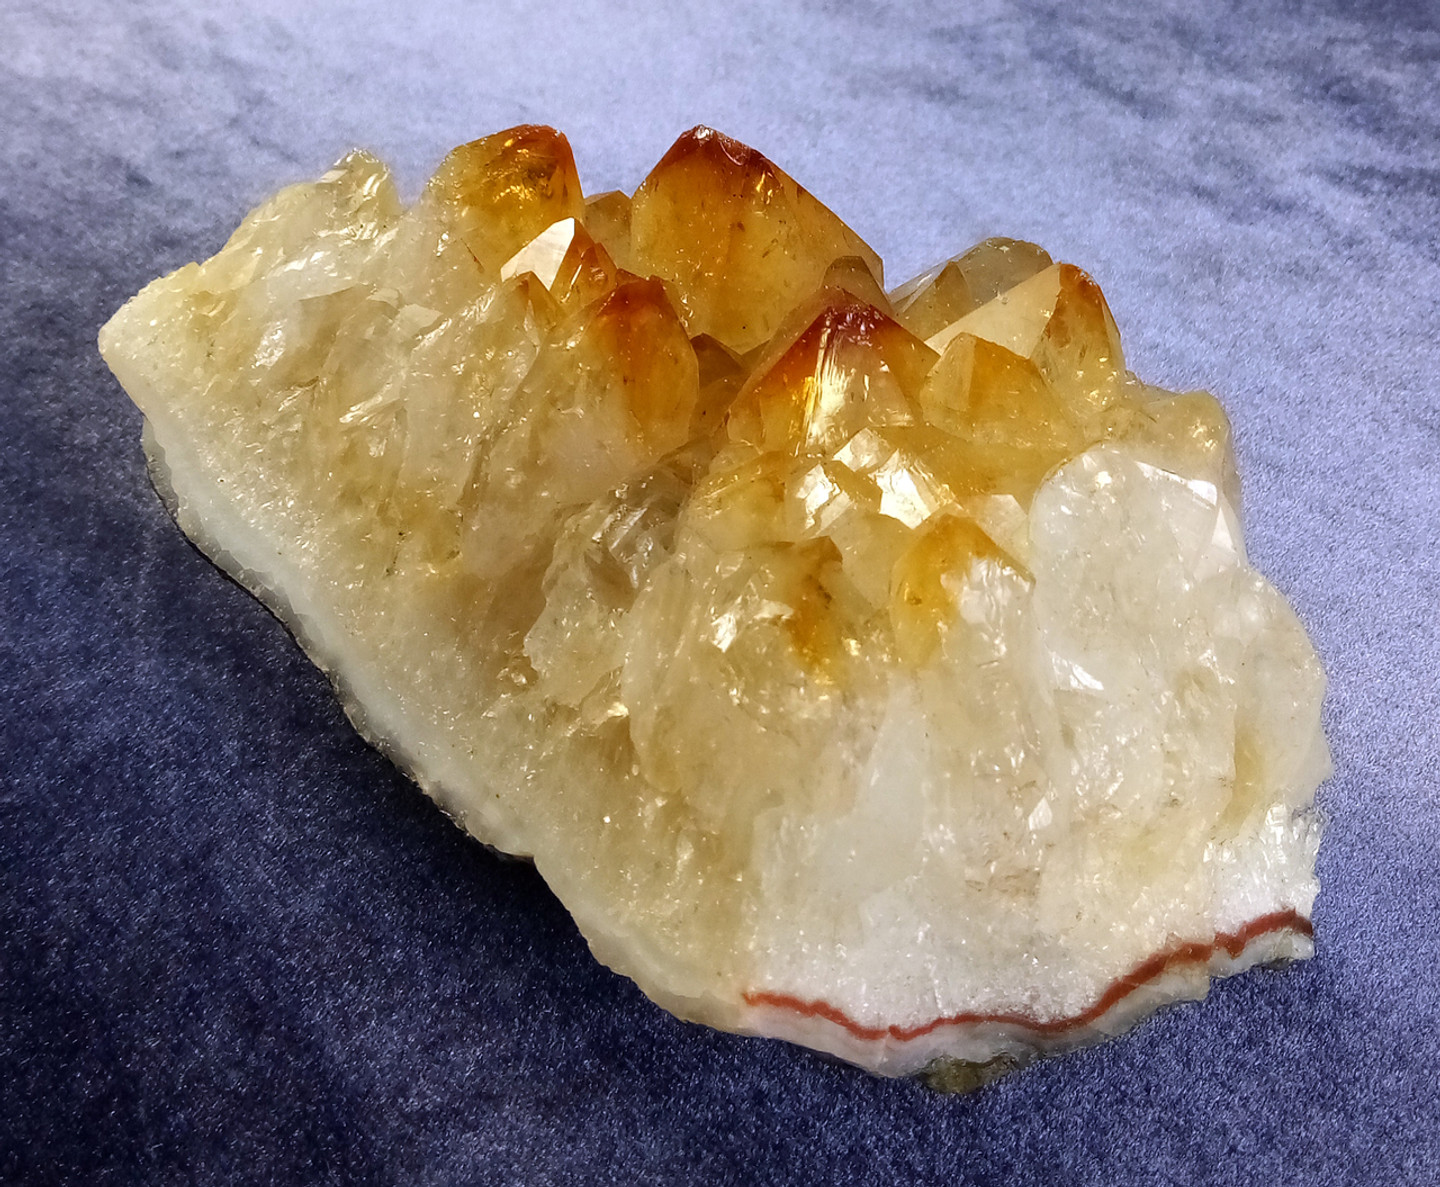 High-Quality Natural Citrine Crystals • Harness Positive Light Energy